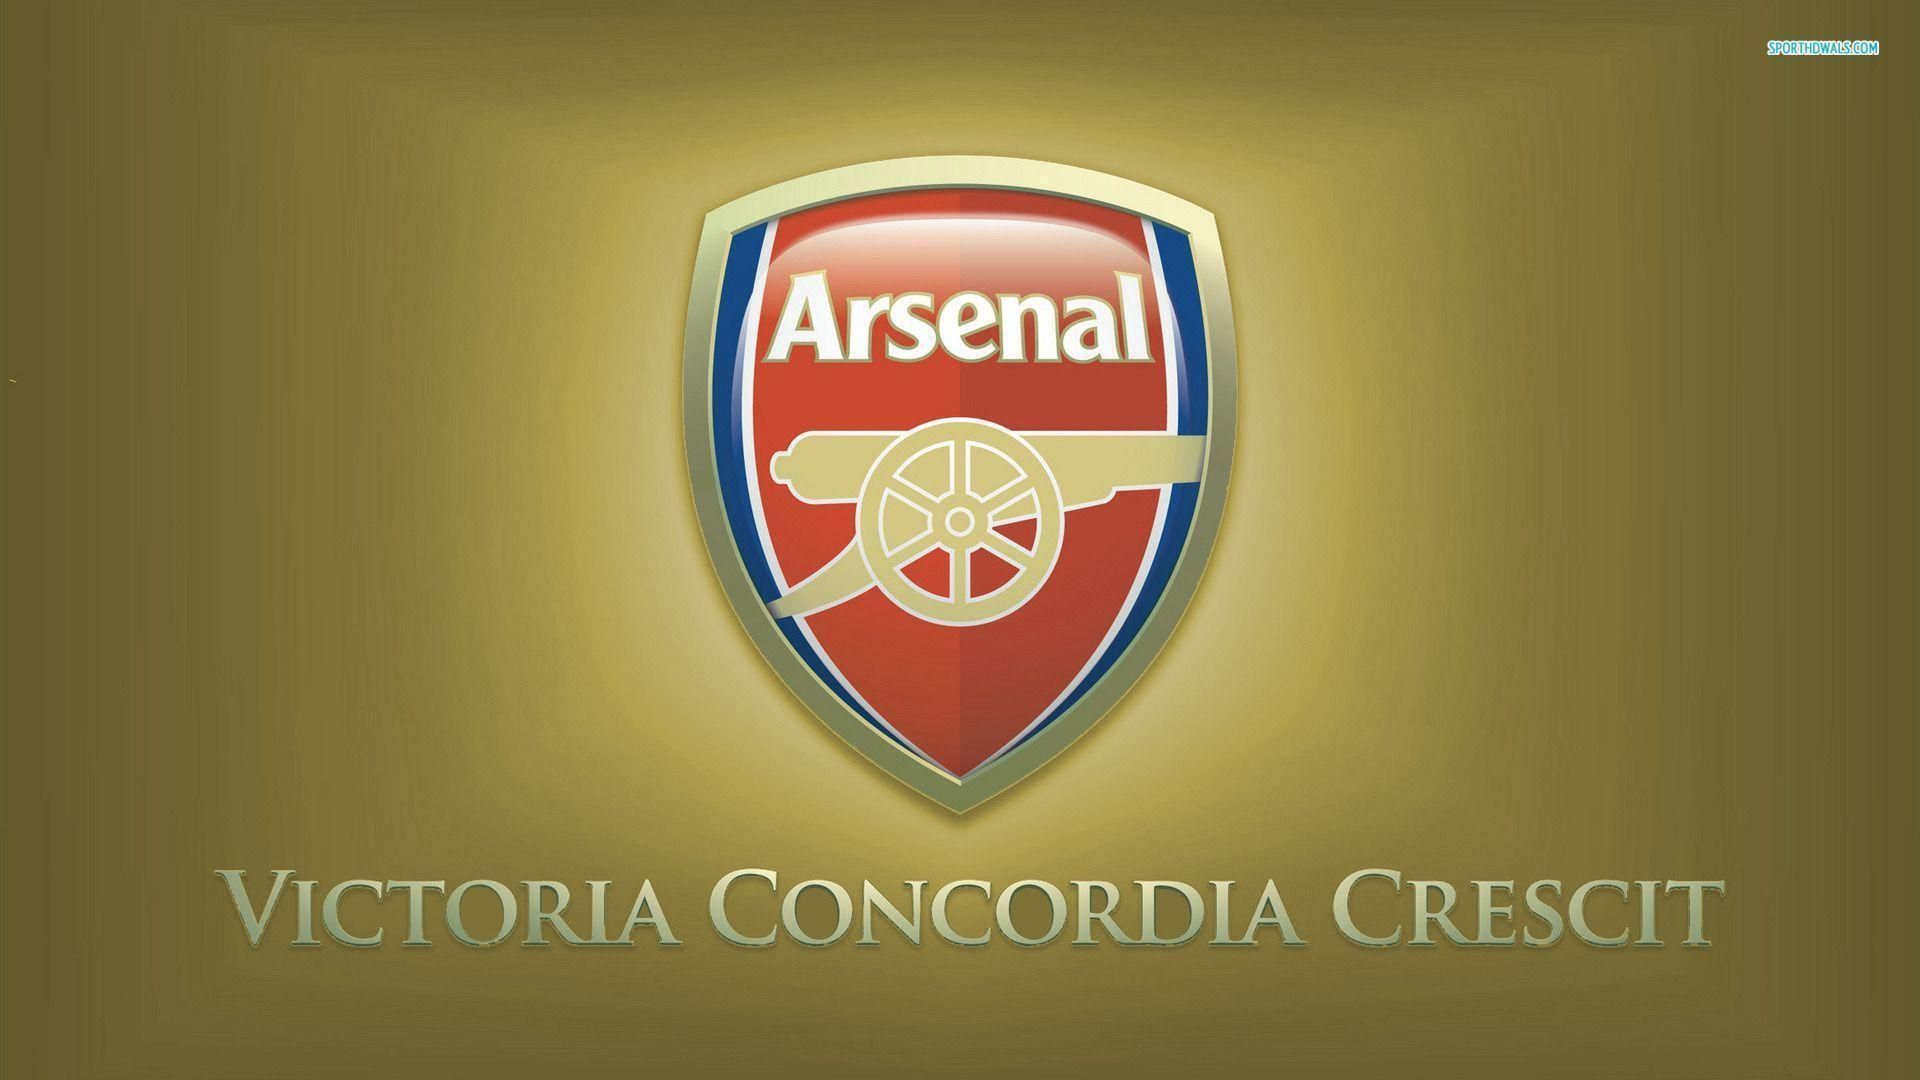 Arsenal Fc Wallpapers Hd Image